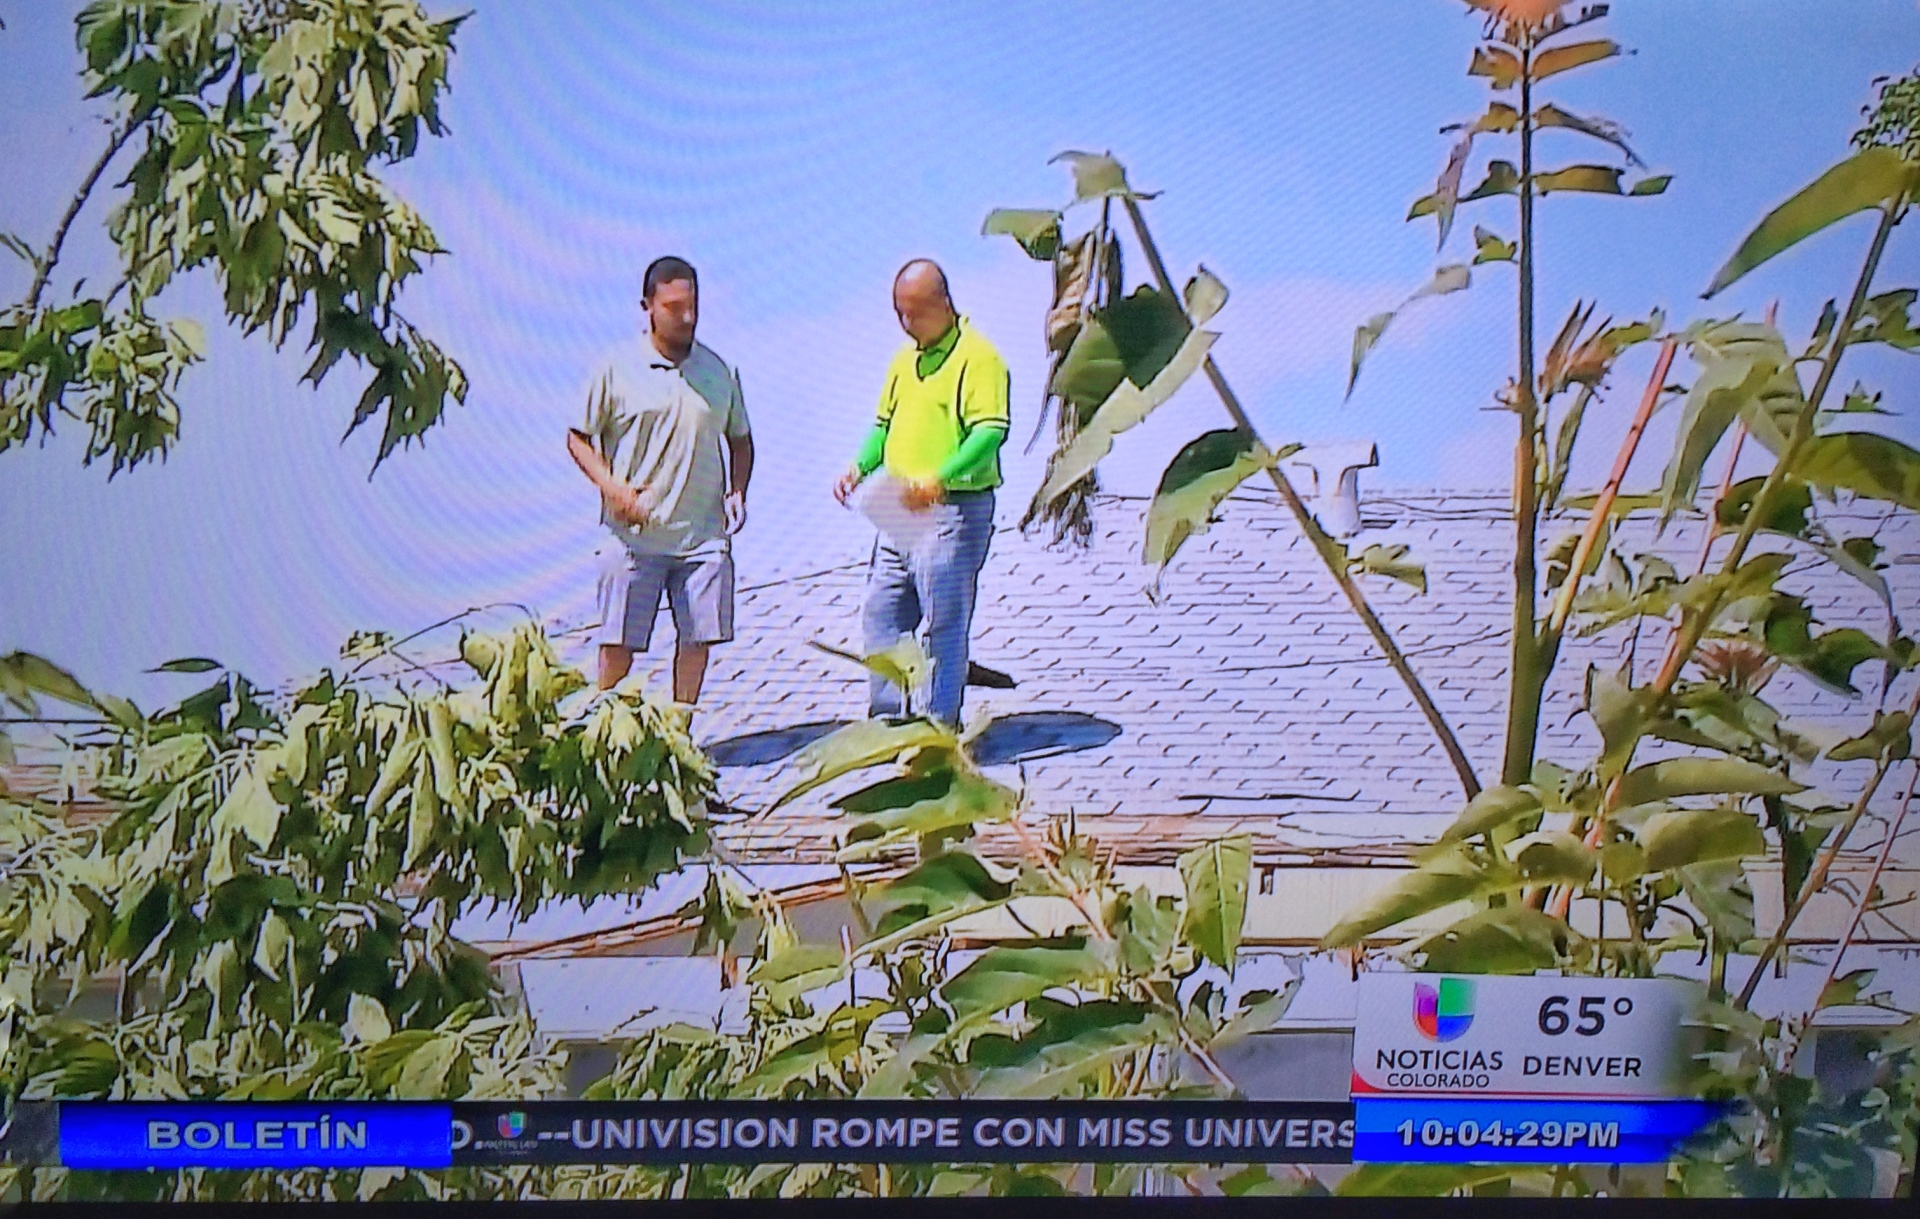 On the news after a sever storm